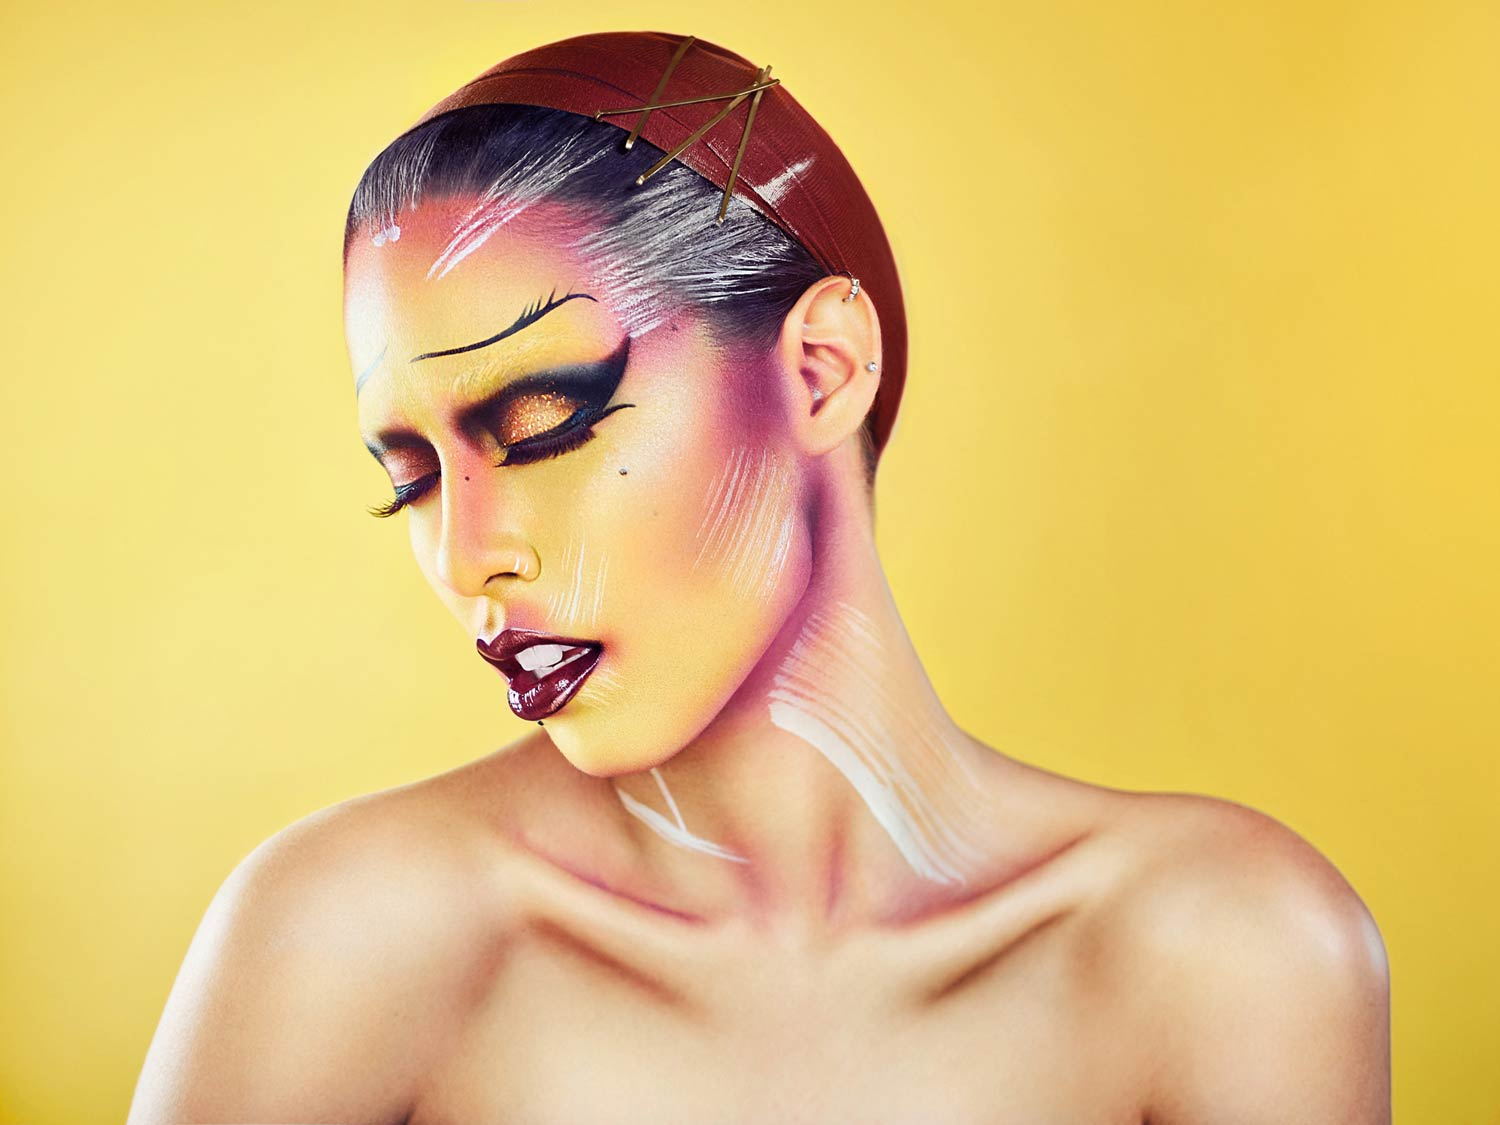 High fashion editorial image of a model in Avant Garde makeup taken by Samgold Photography in Orlando FL